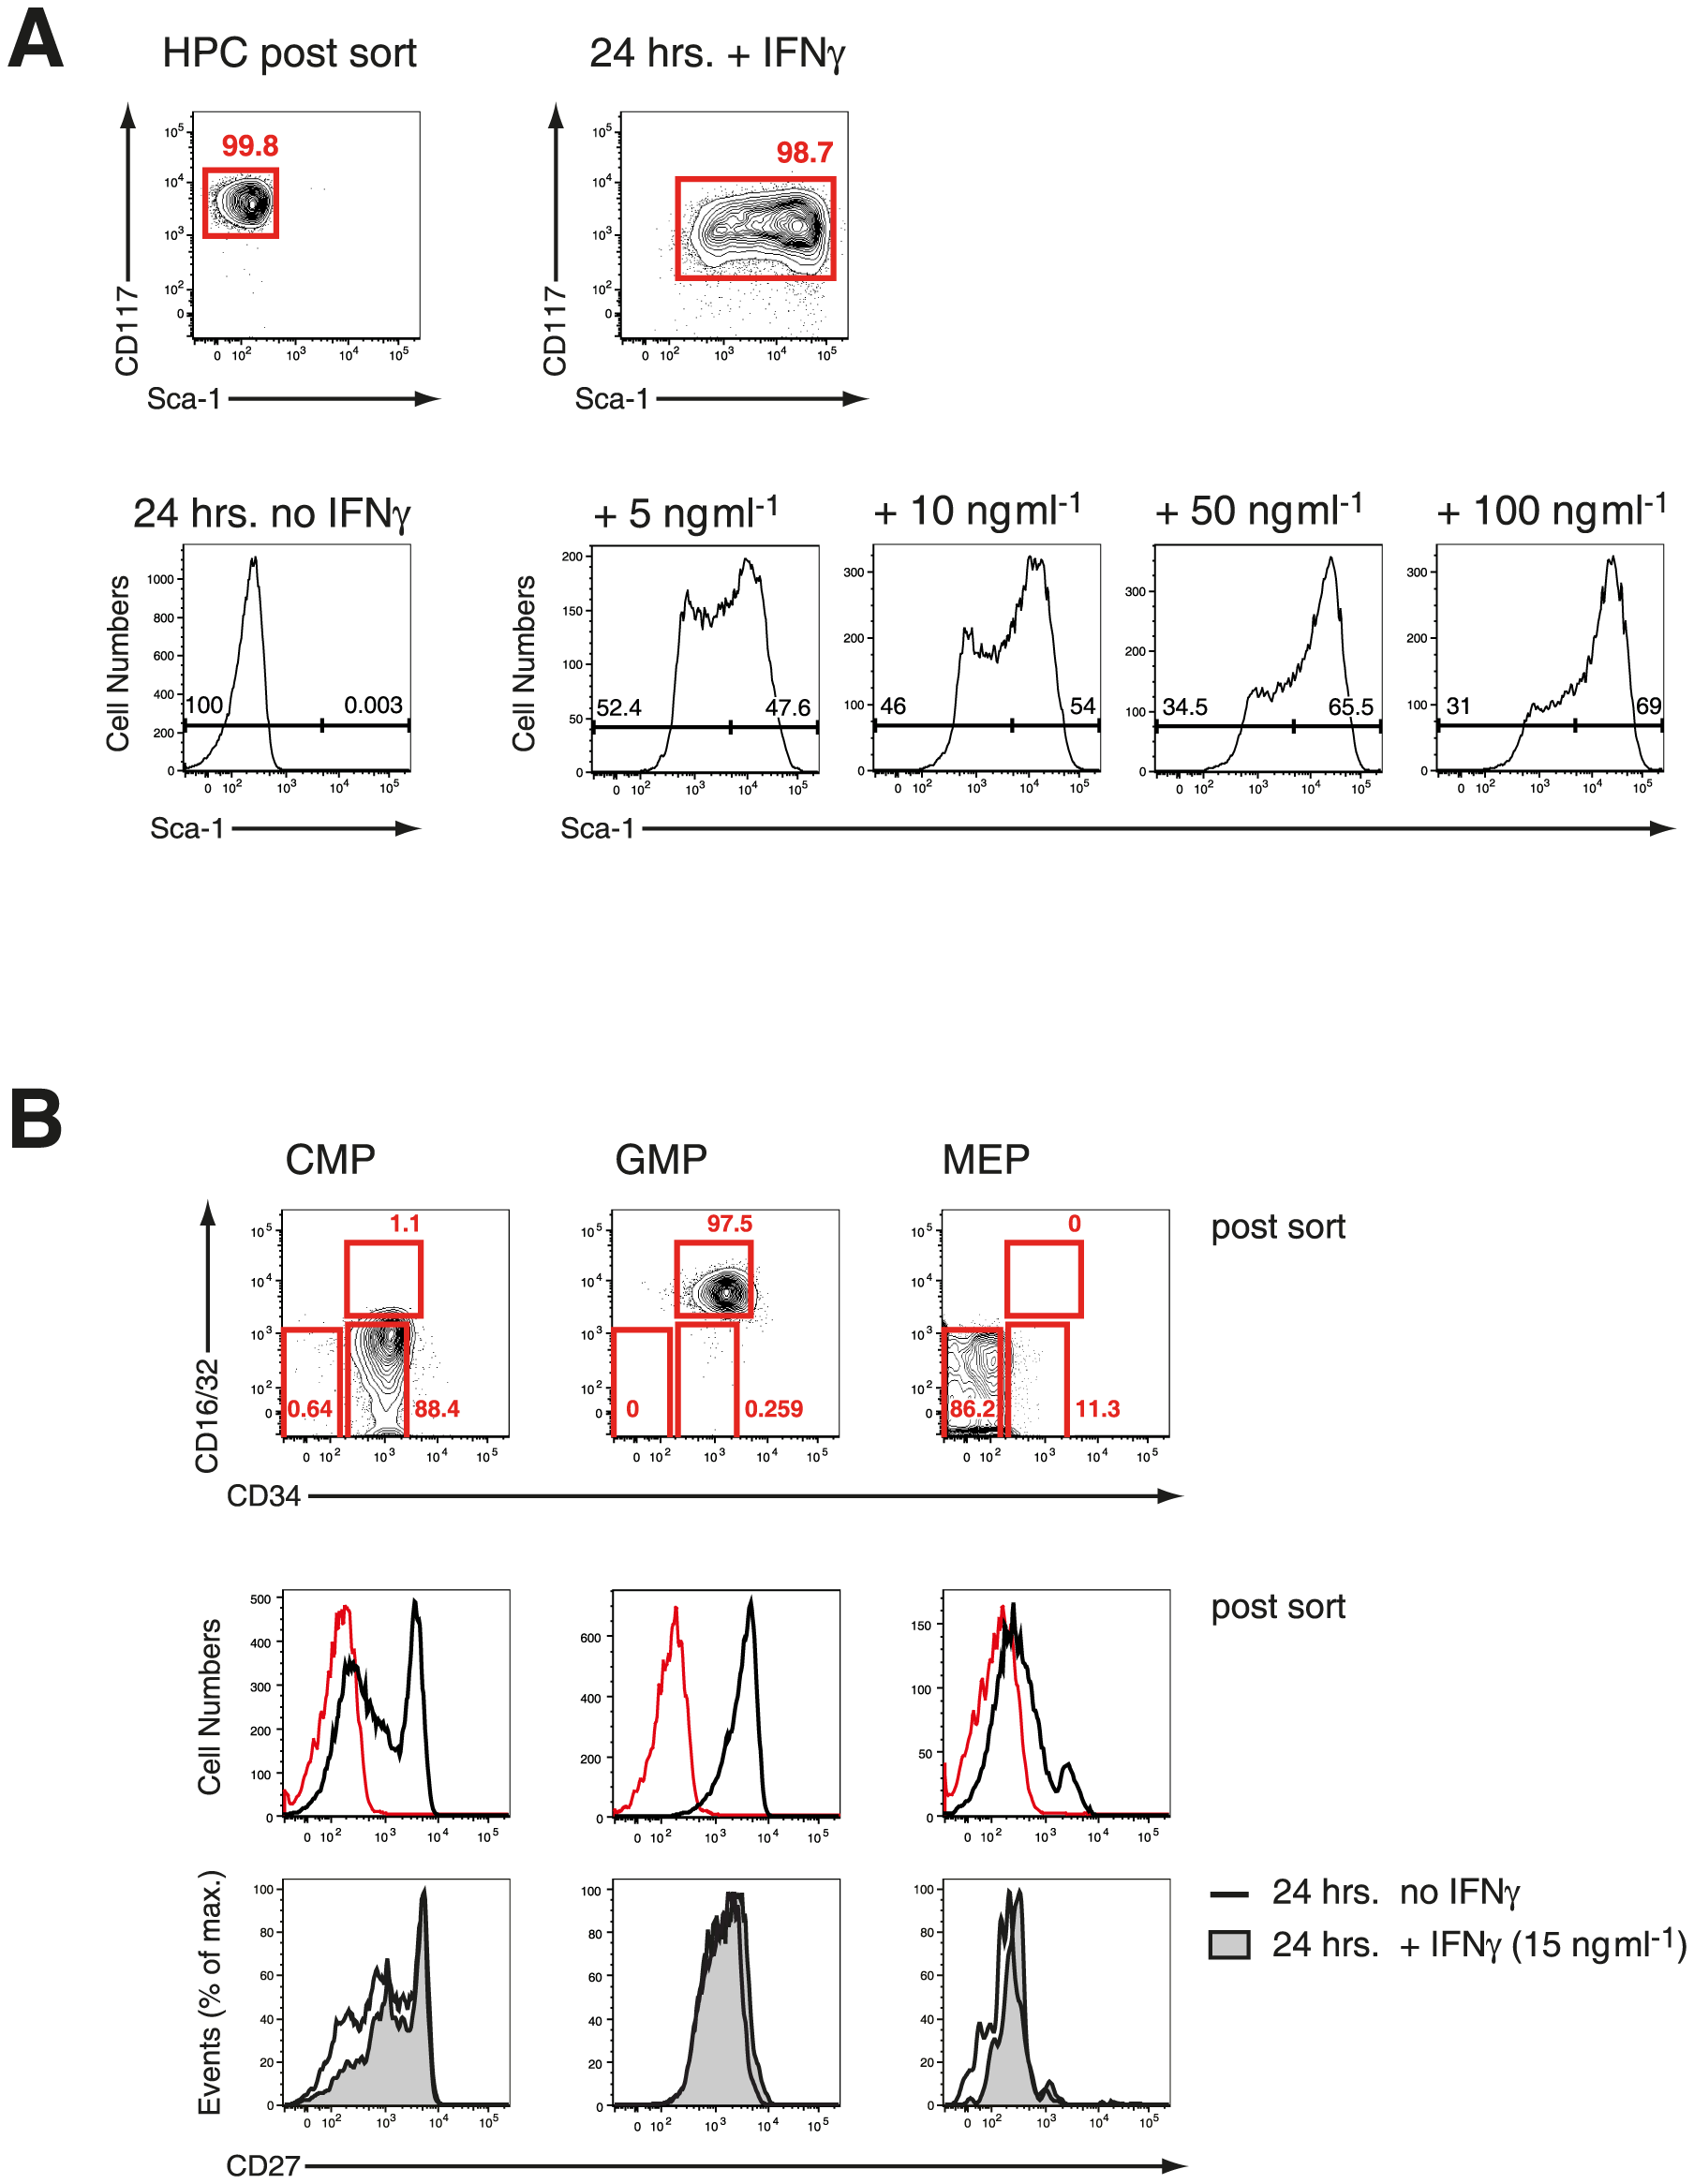 IFN-γ in vitro effectively upregulates Sca-1 on HPCs without affecting expression of CD27.